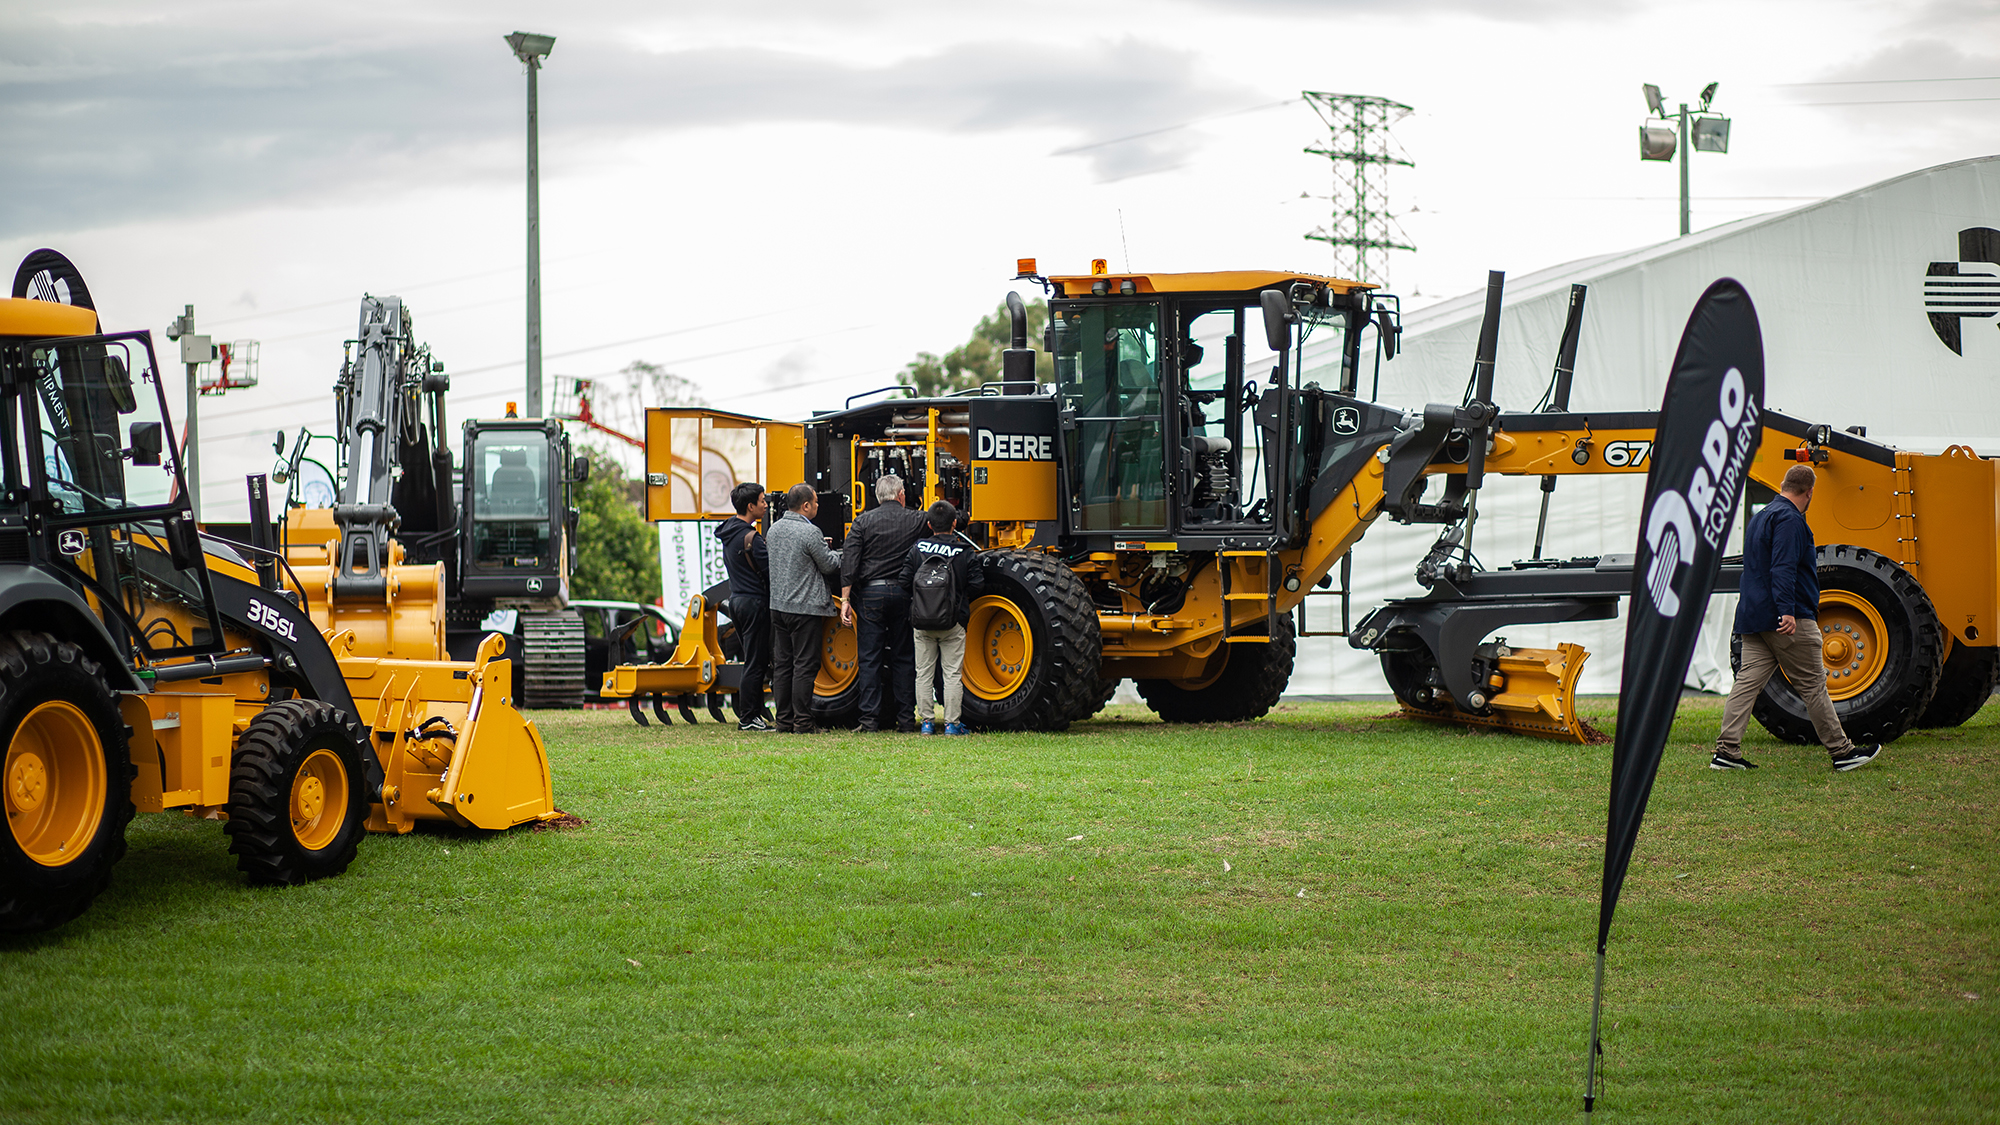 RDO Equipment turns 1 as John Deere dealer